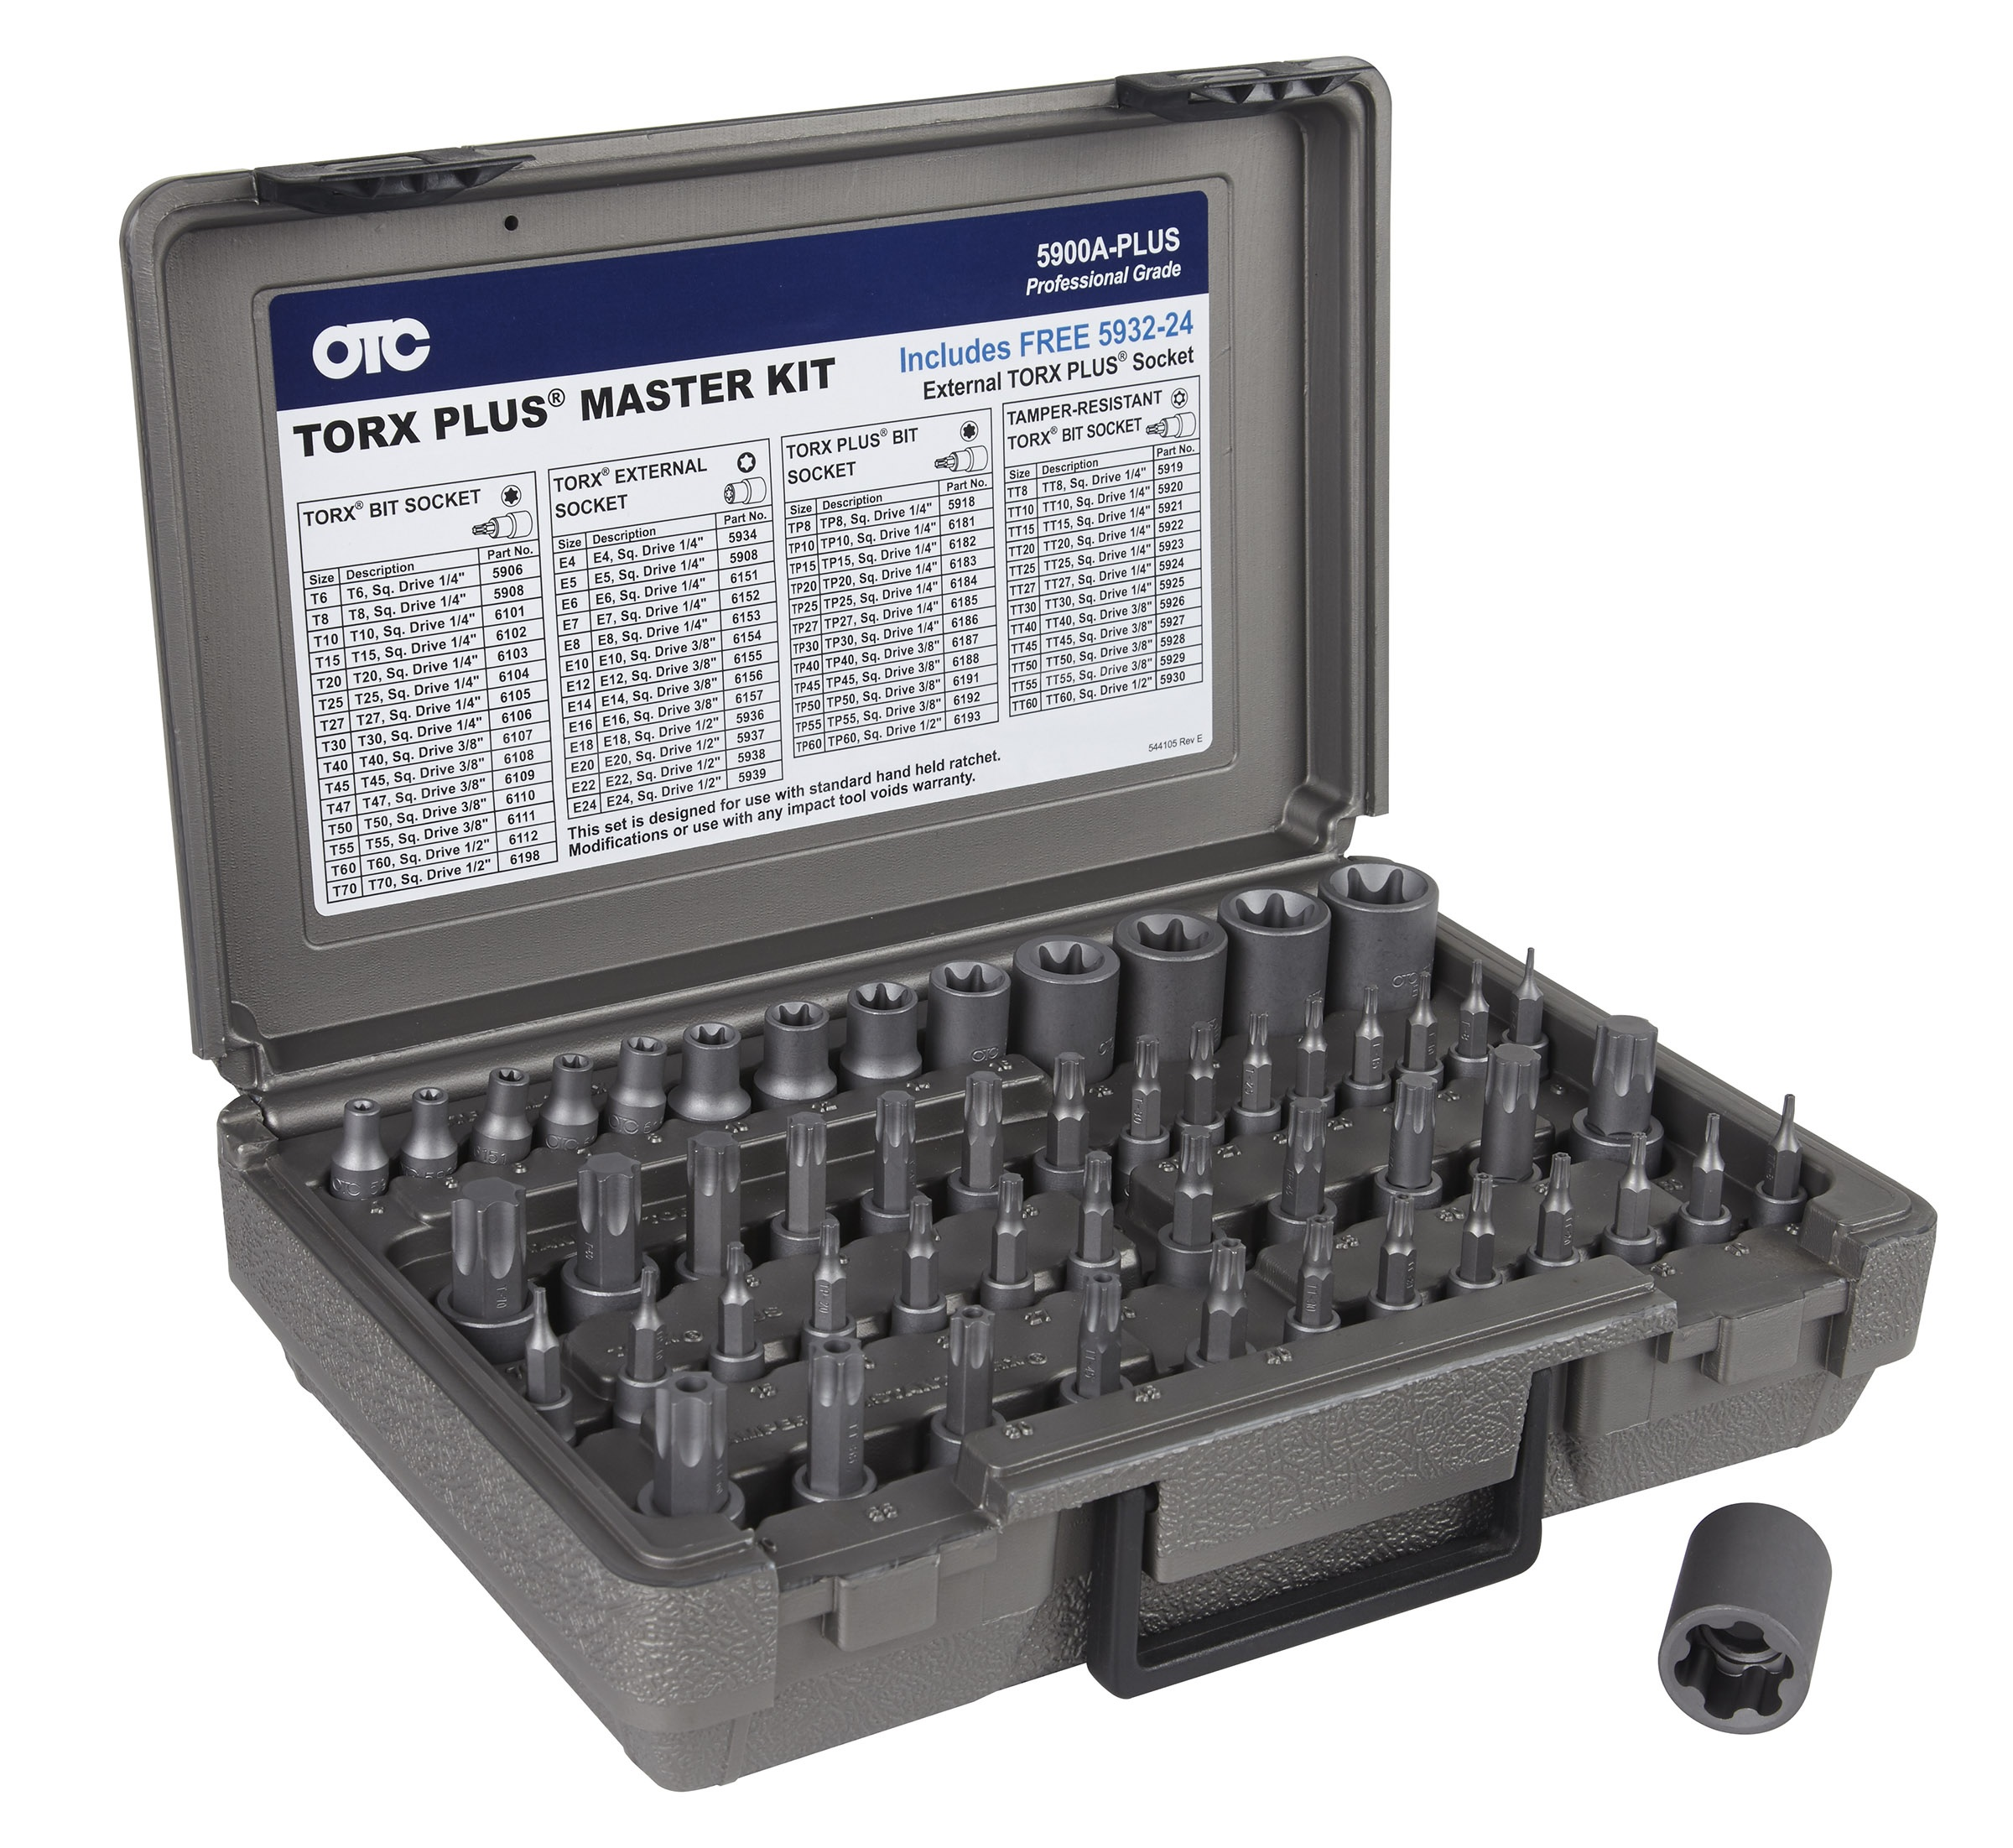 53 PC MASTER TORX SET OTC5900A-PLUS | Tool Discounter